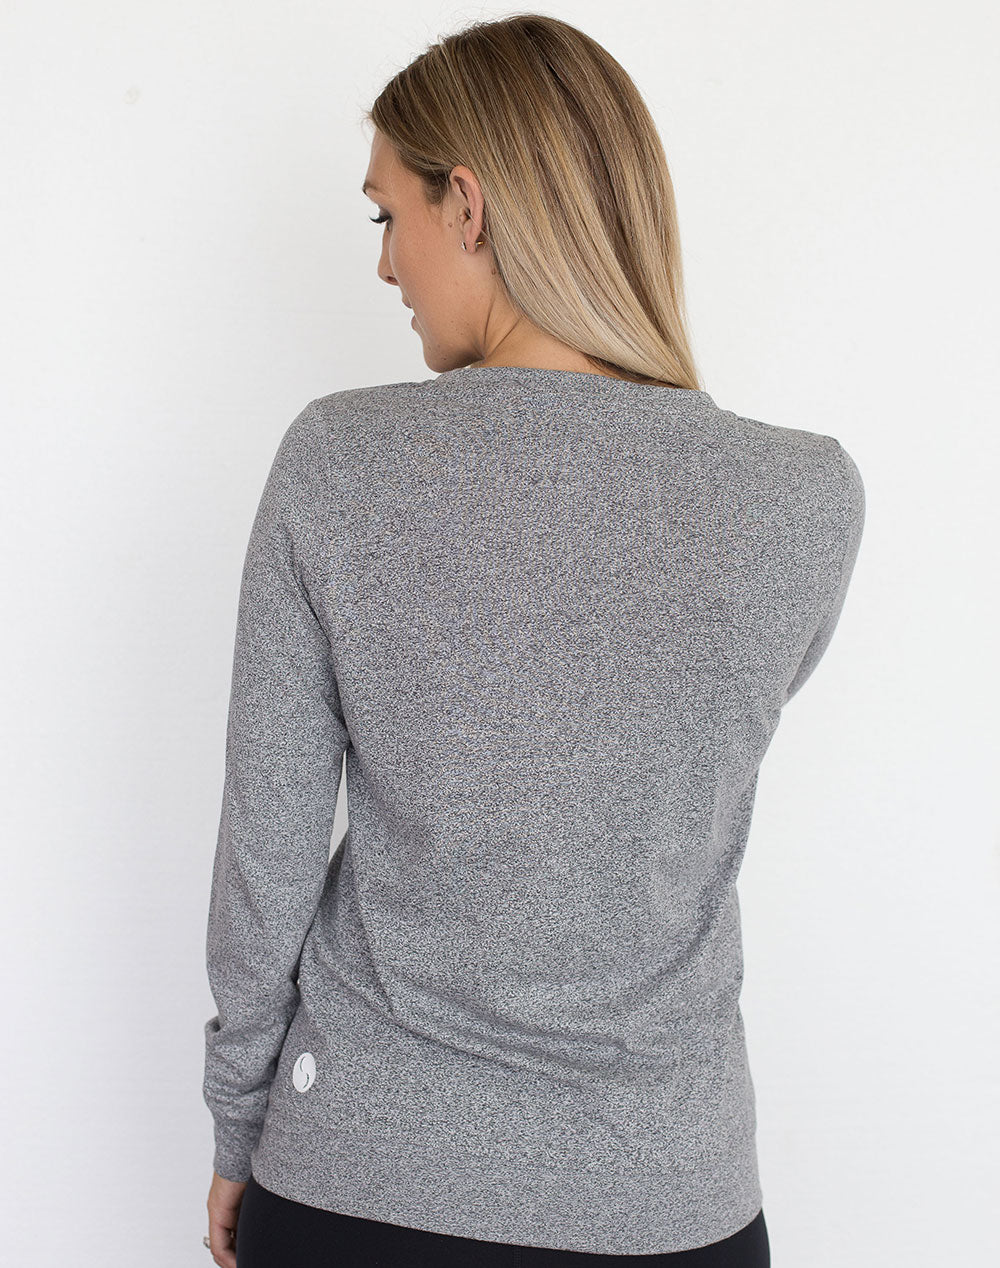 back view of a mum in a grey crew neck maternity top